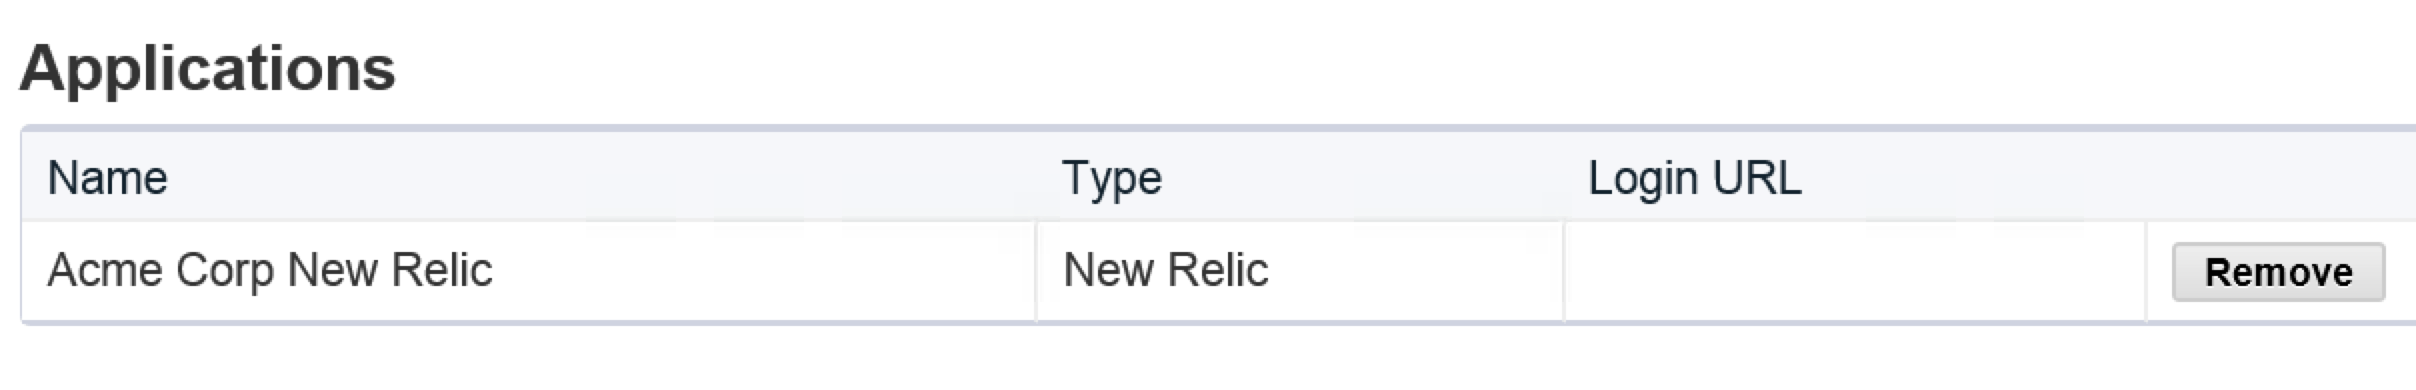 New Relic Application Added